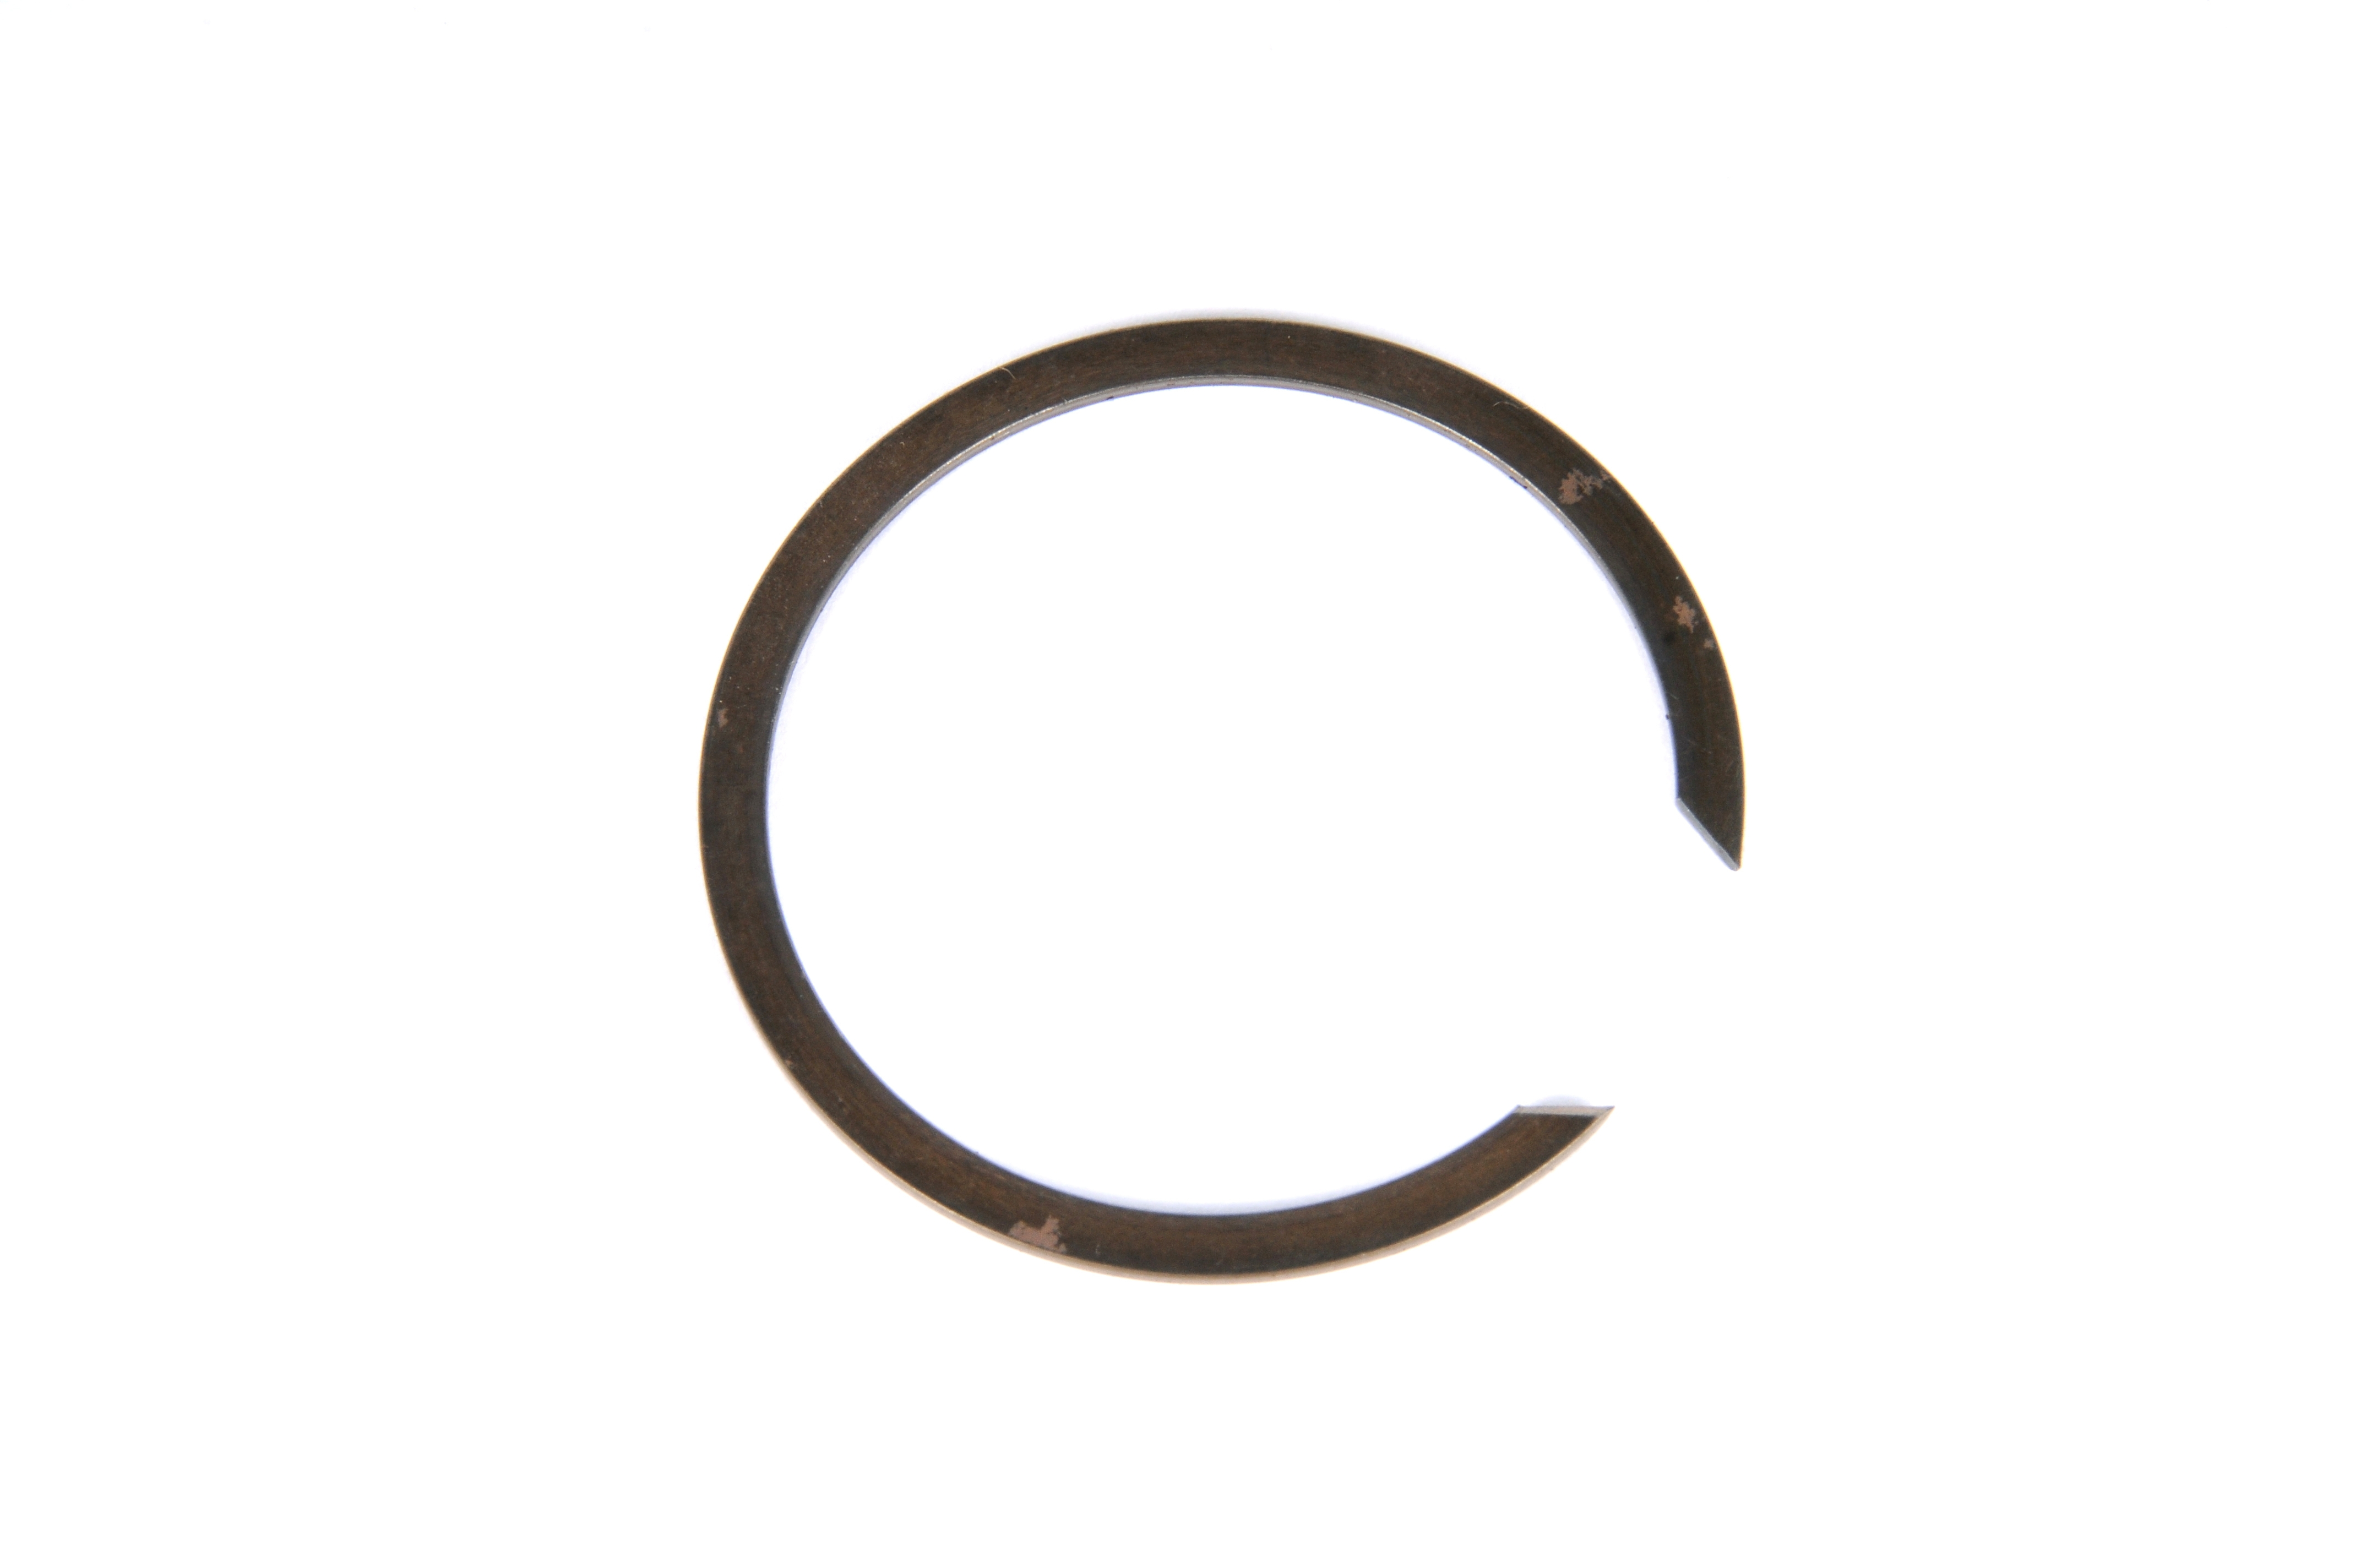 ACDELCO GM ORIGINAL EQUIPMENT - Manual Transmission Gear Synchro Ring Retainer - DCB 89059402